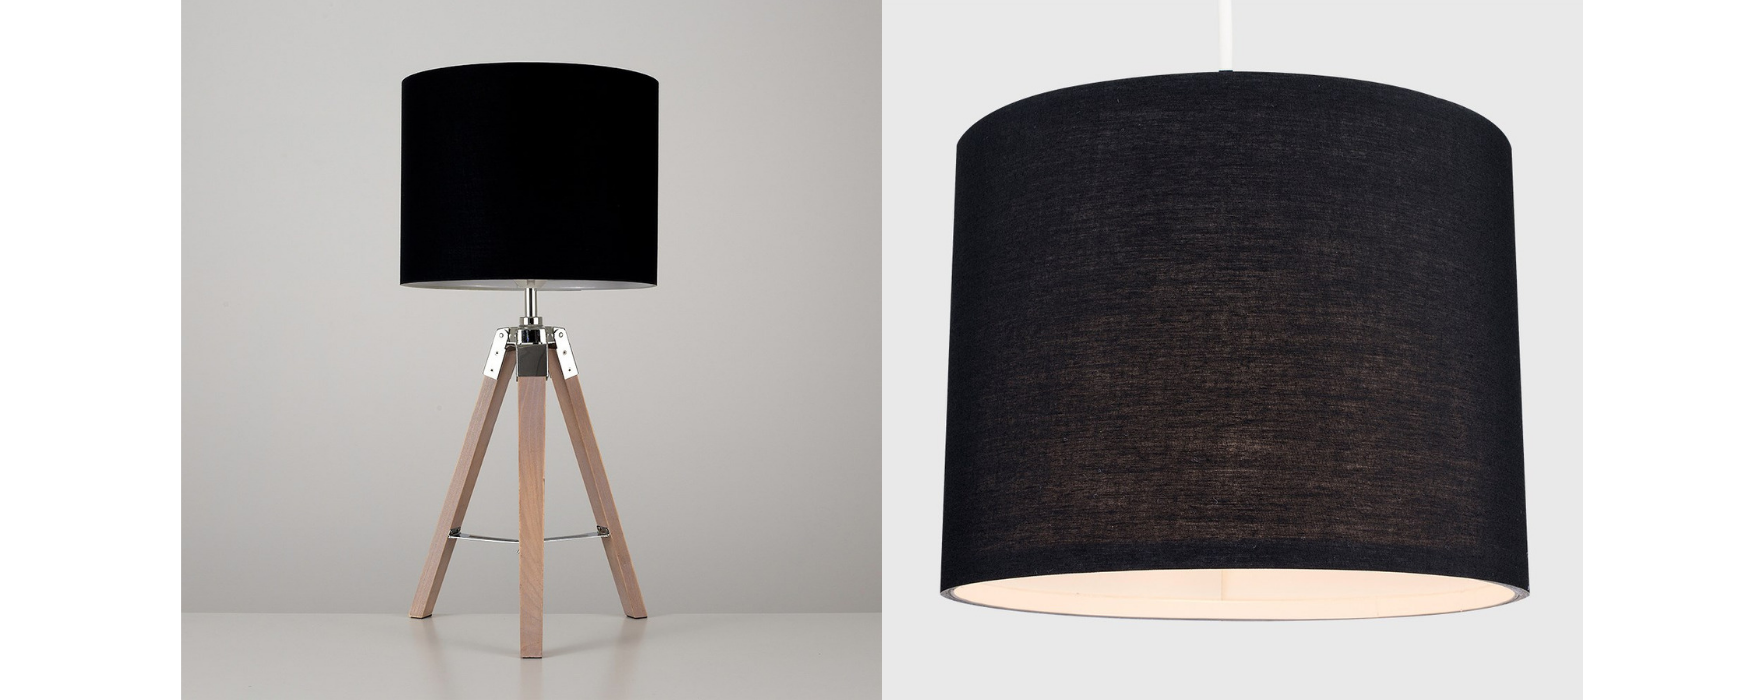 Finished Rolla Shade and Clipper Table Lamp with Black Rolla Shade